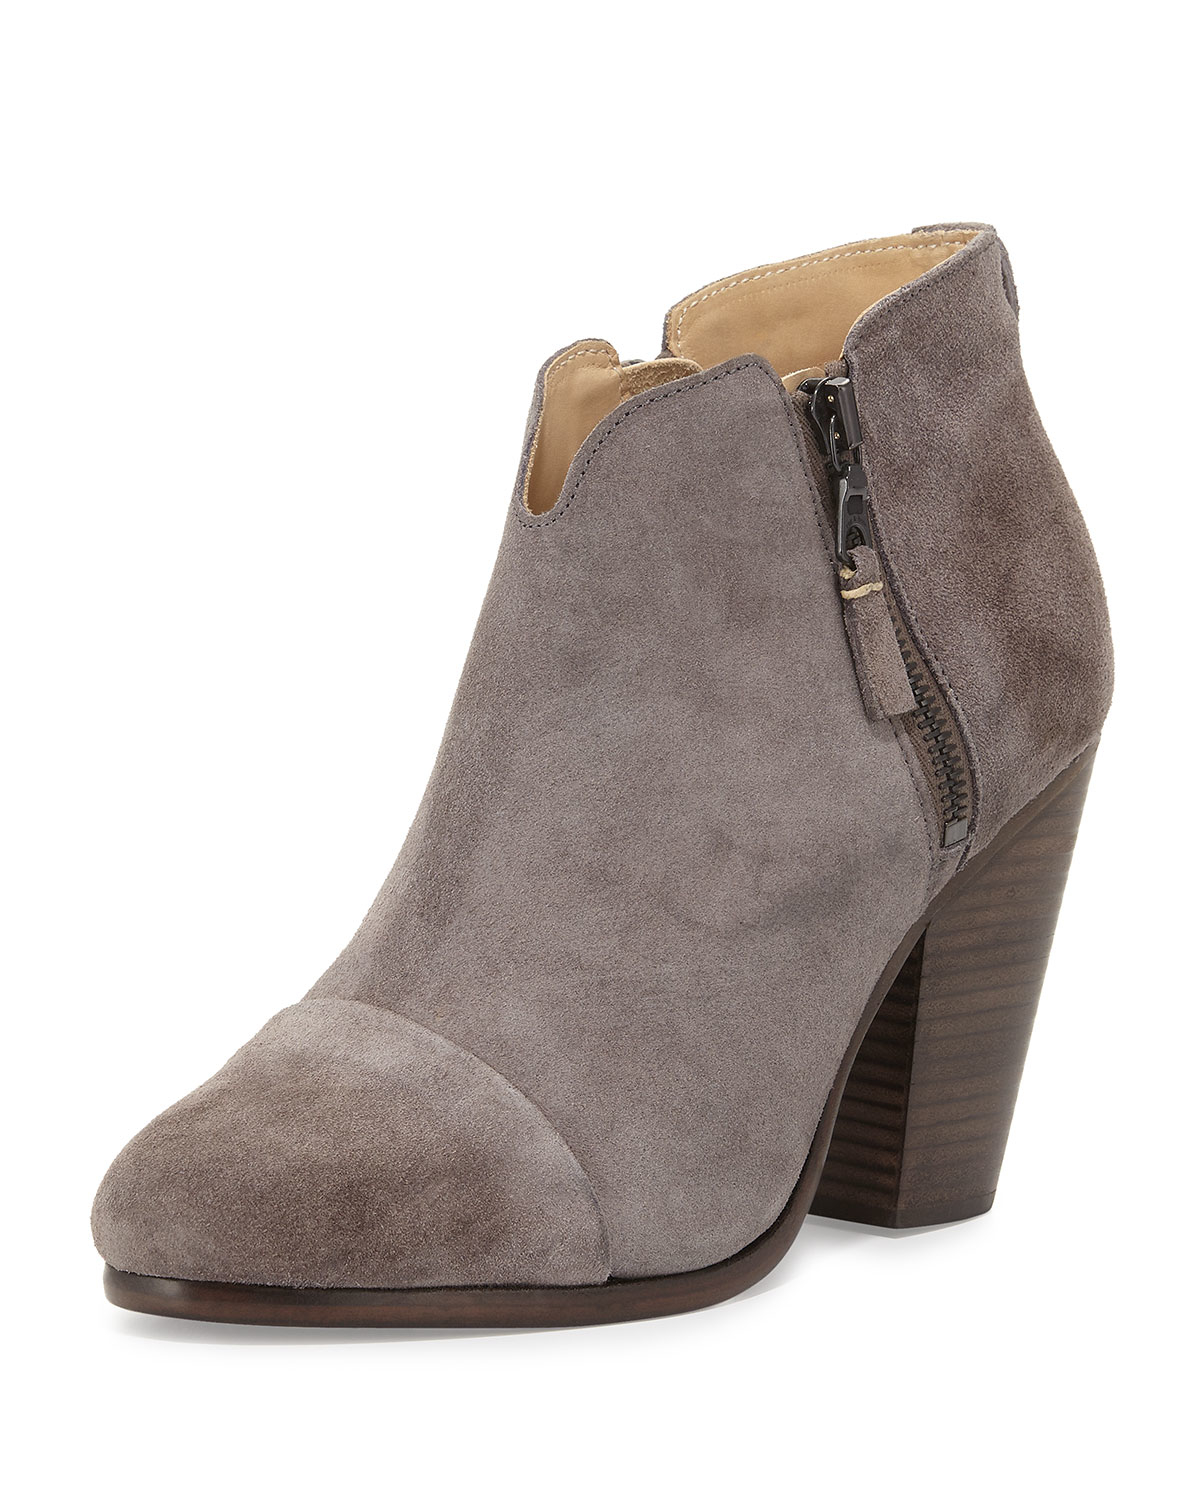 Rag Amp Bone Margot Suede Ankle Boots In Gray Lyst